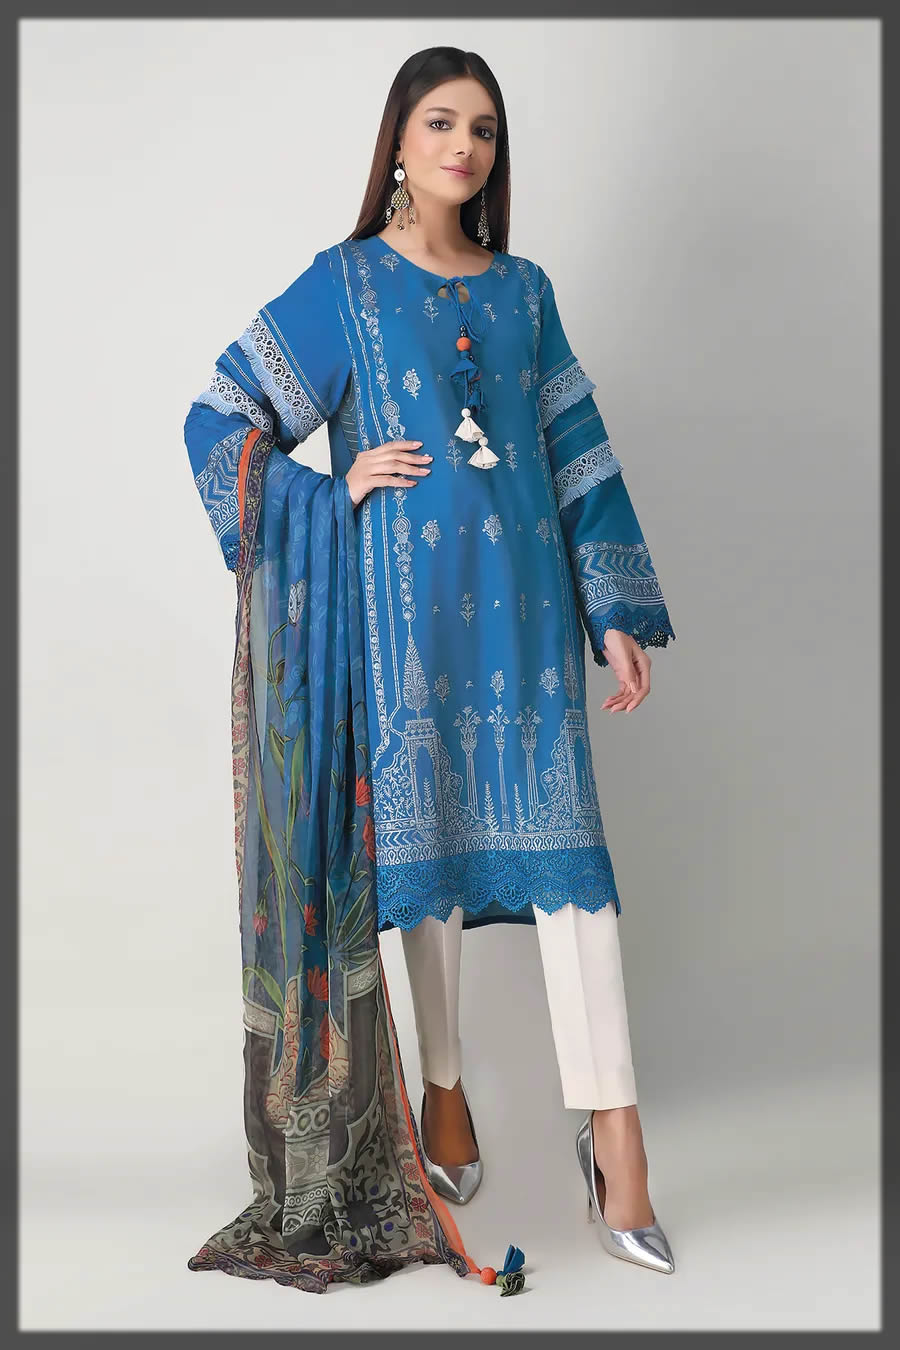 enchanted blue summer embroidered dress